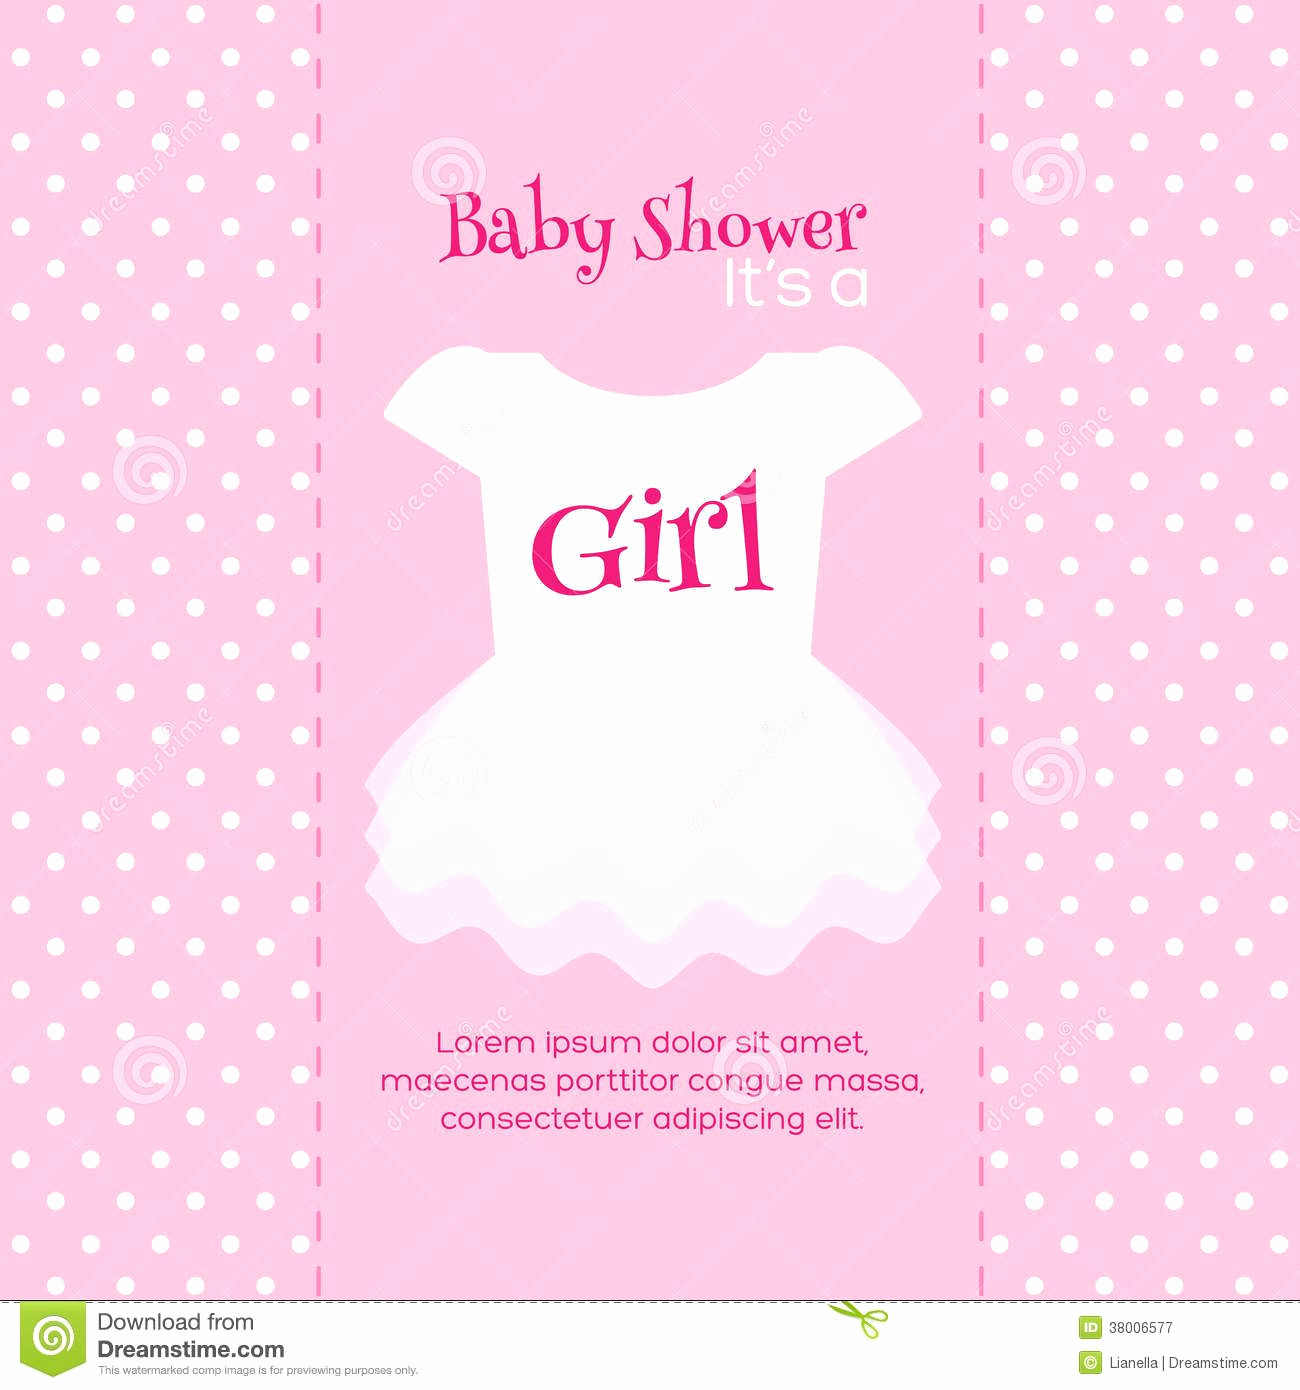 Free Baby Shower Templates Inspirational Design Free Printable Baby Shower Invitations for Girls